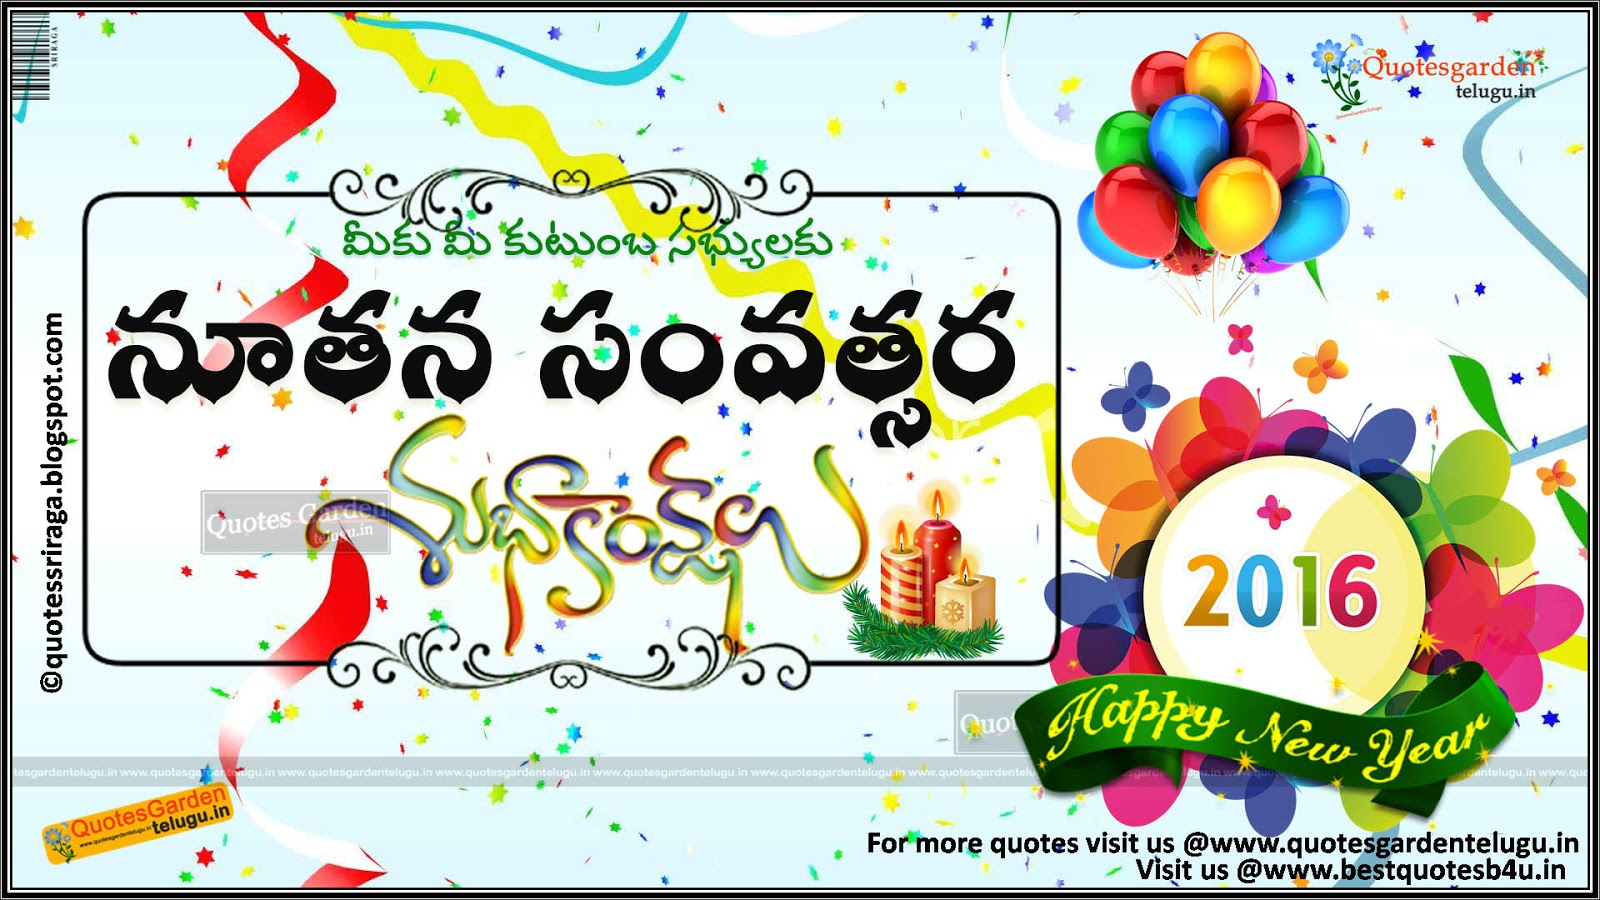 Nice Happy new year telugu Greetings Wallpapers | QUOTES ...